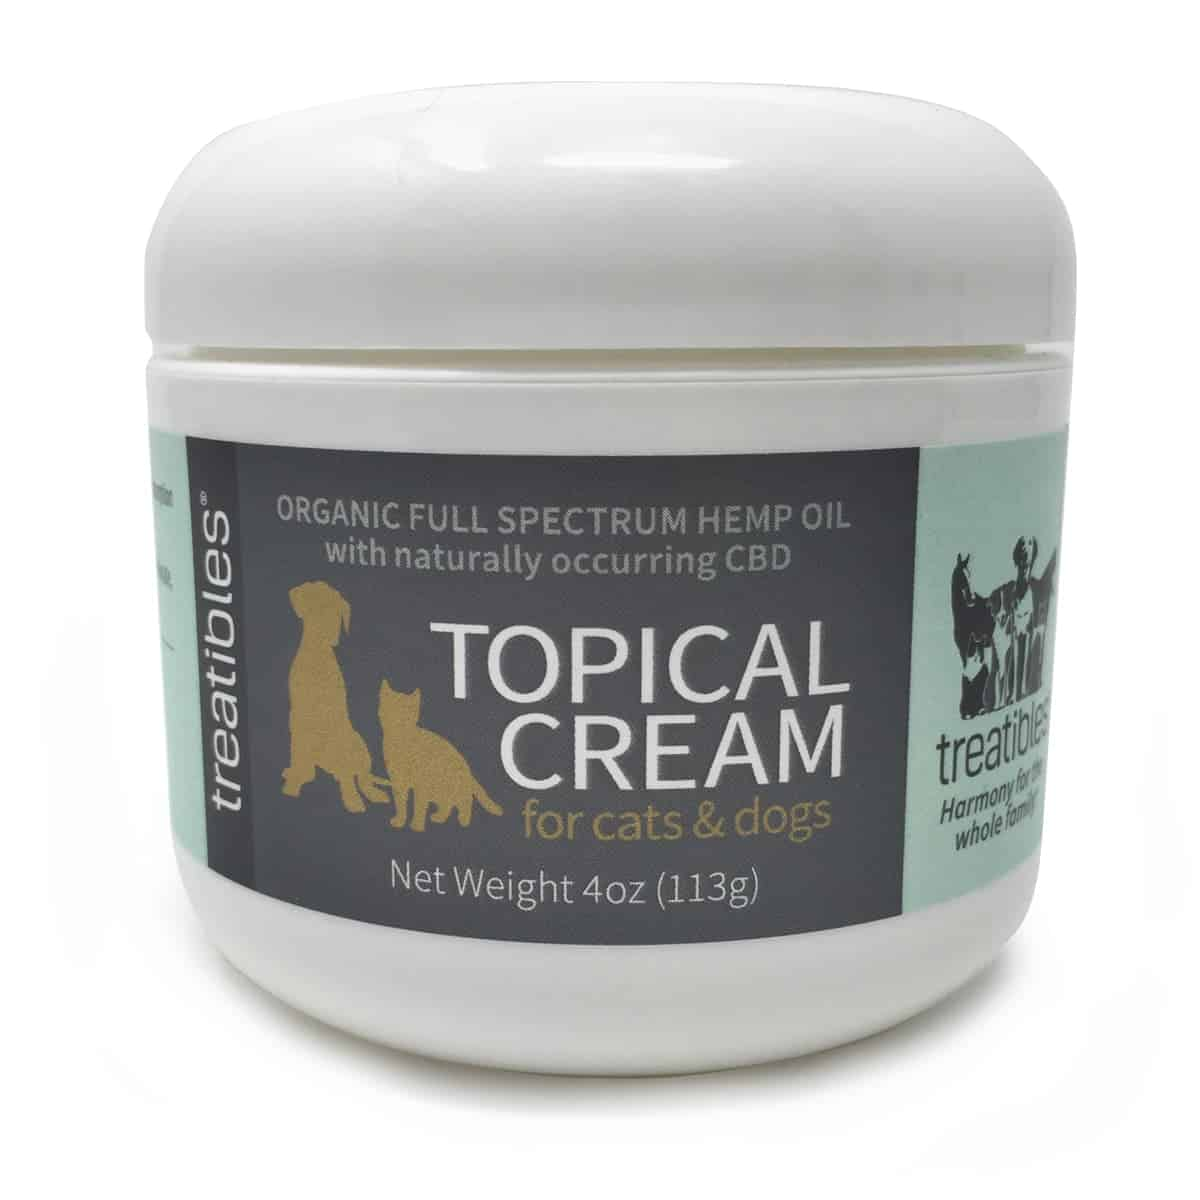 Treatibles Full Spectrum Hemp Oil Topical Cream- 4oz